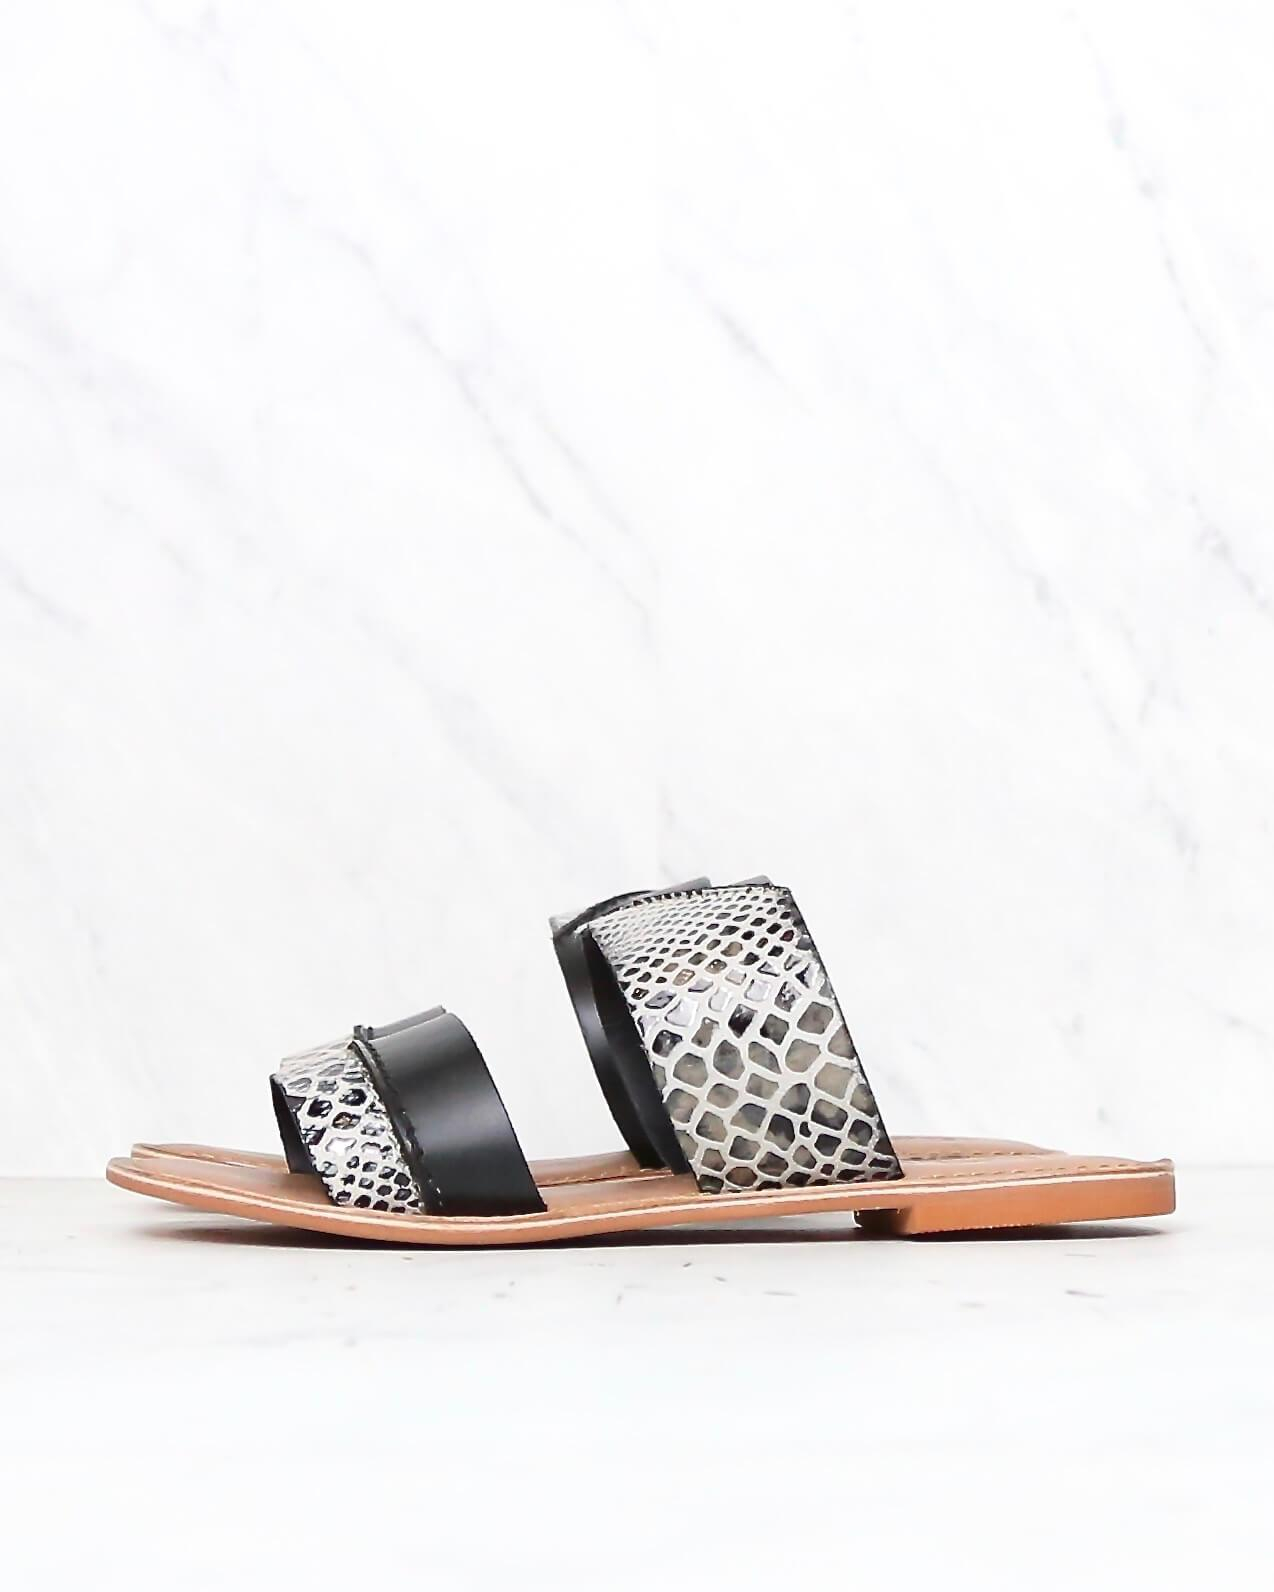 Image of BC Footwear - On The Spot Black Sandals with Exotic Print